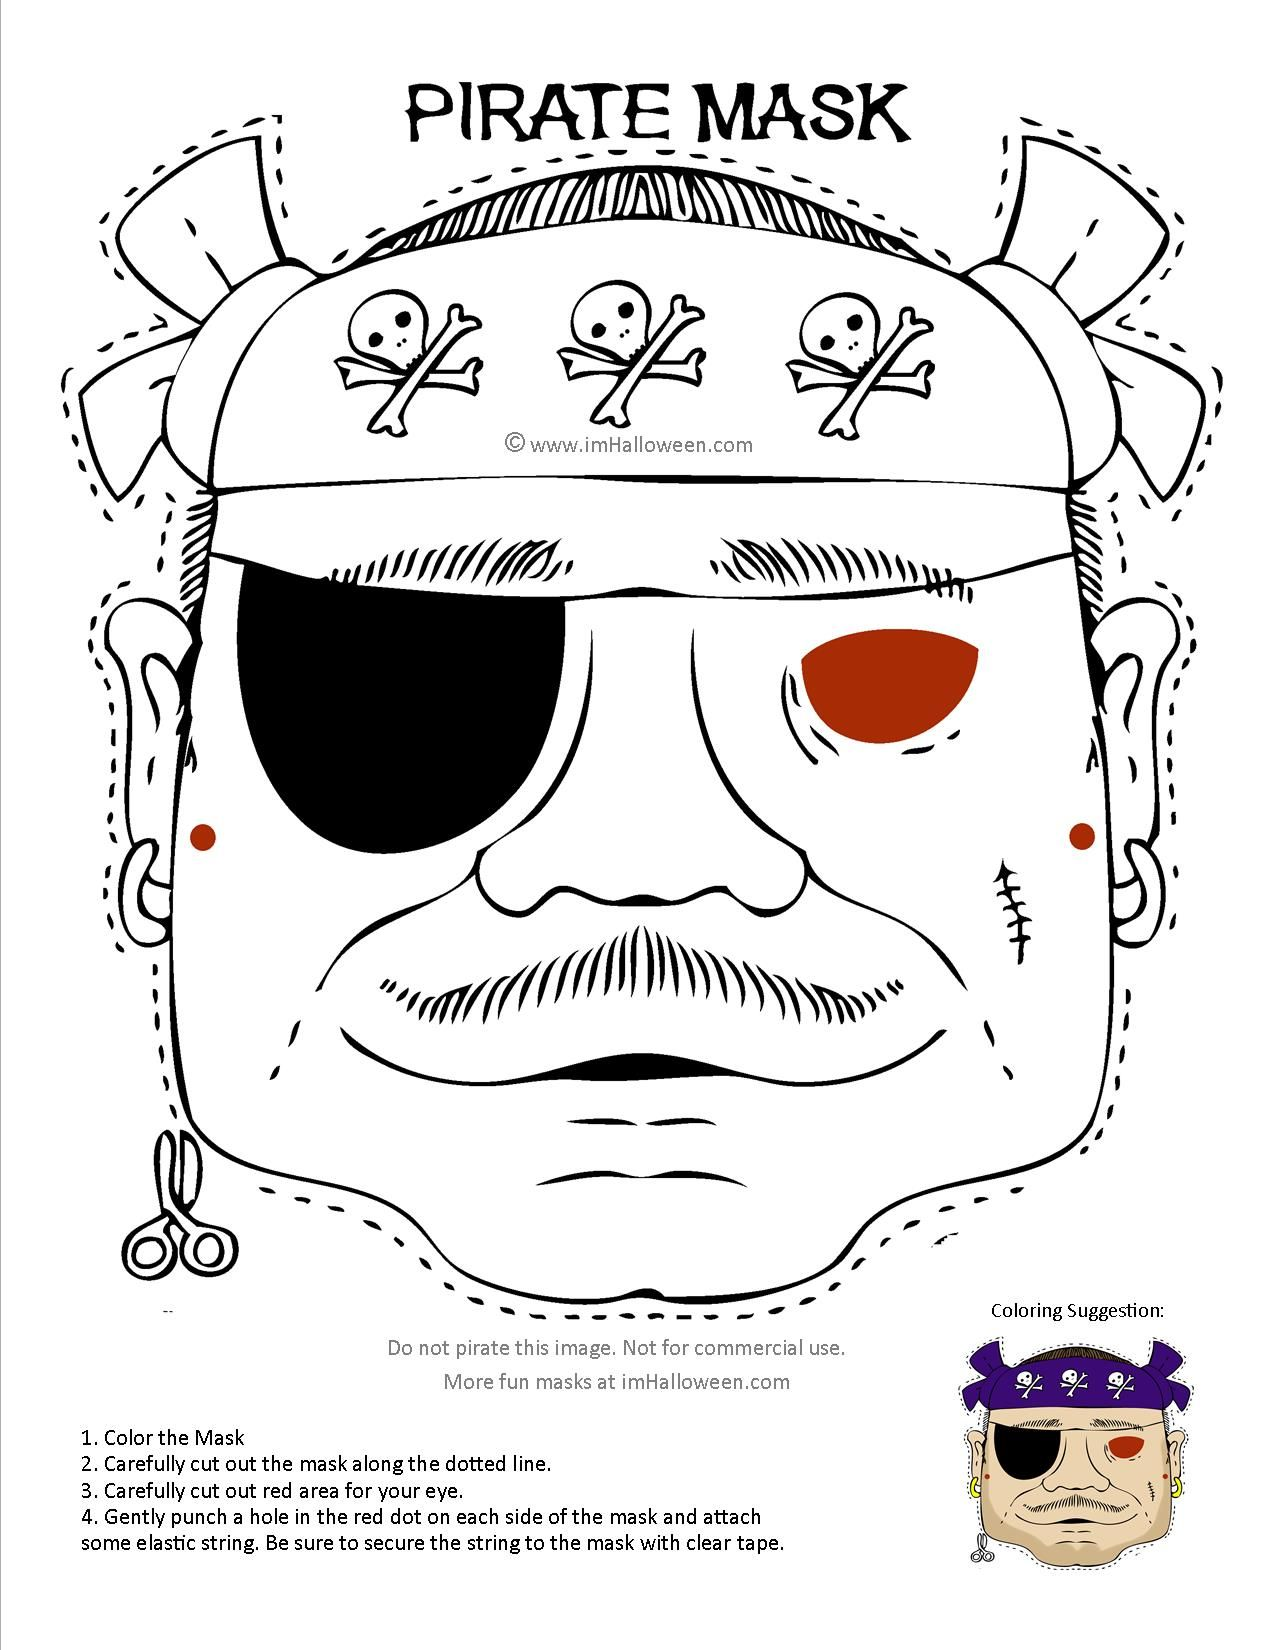 Pirate Mask Coloring Page Printout More Fun At